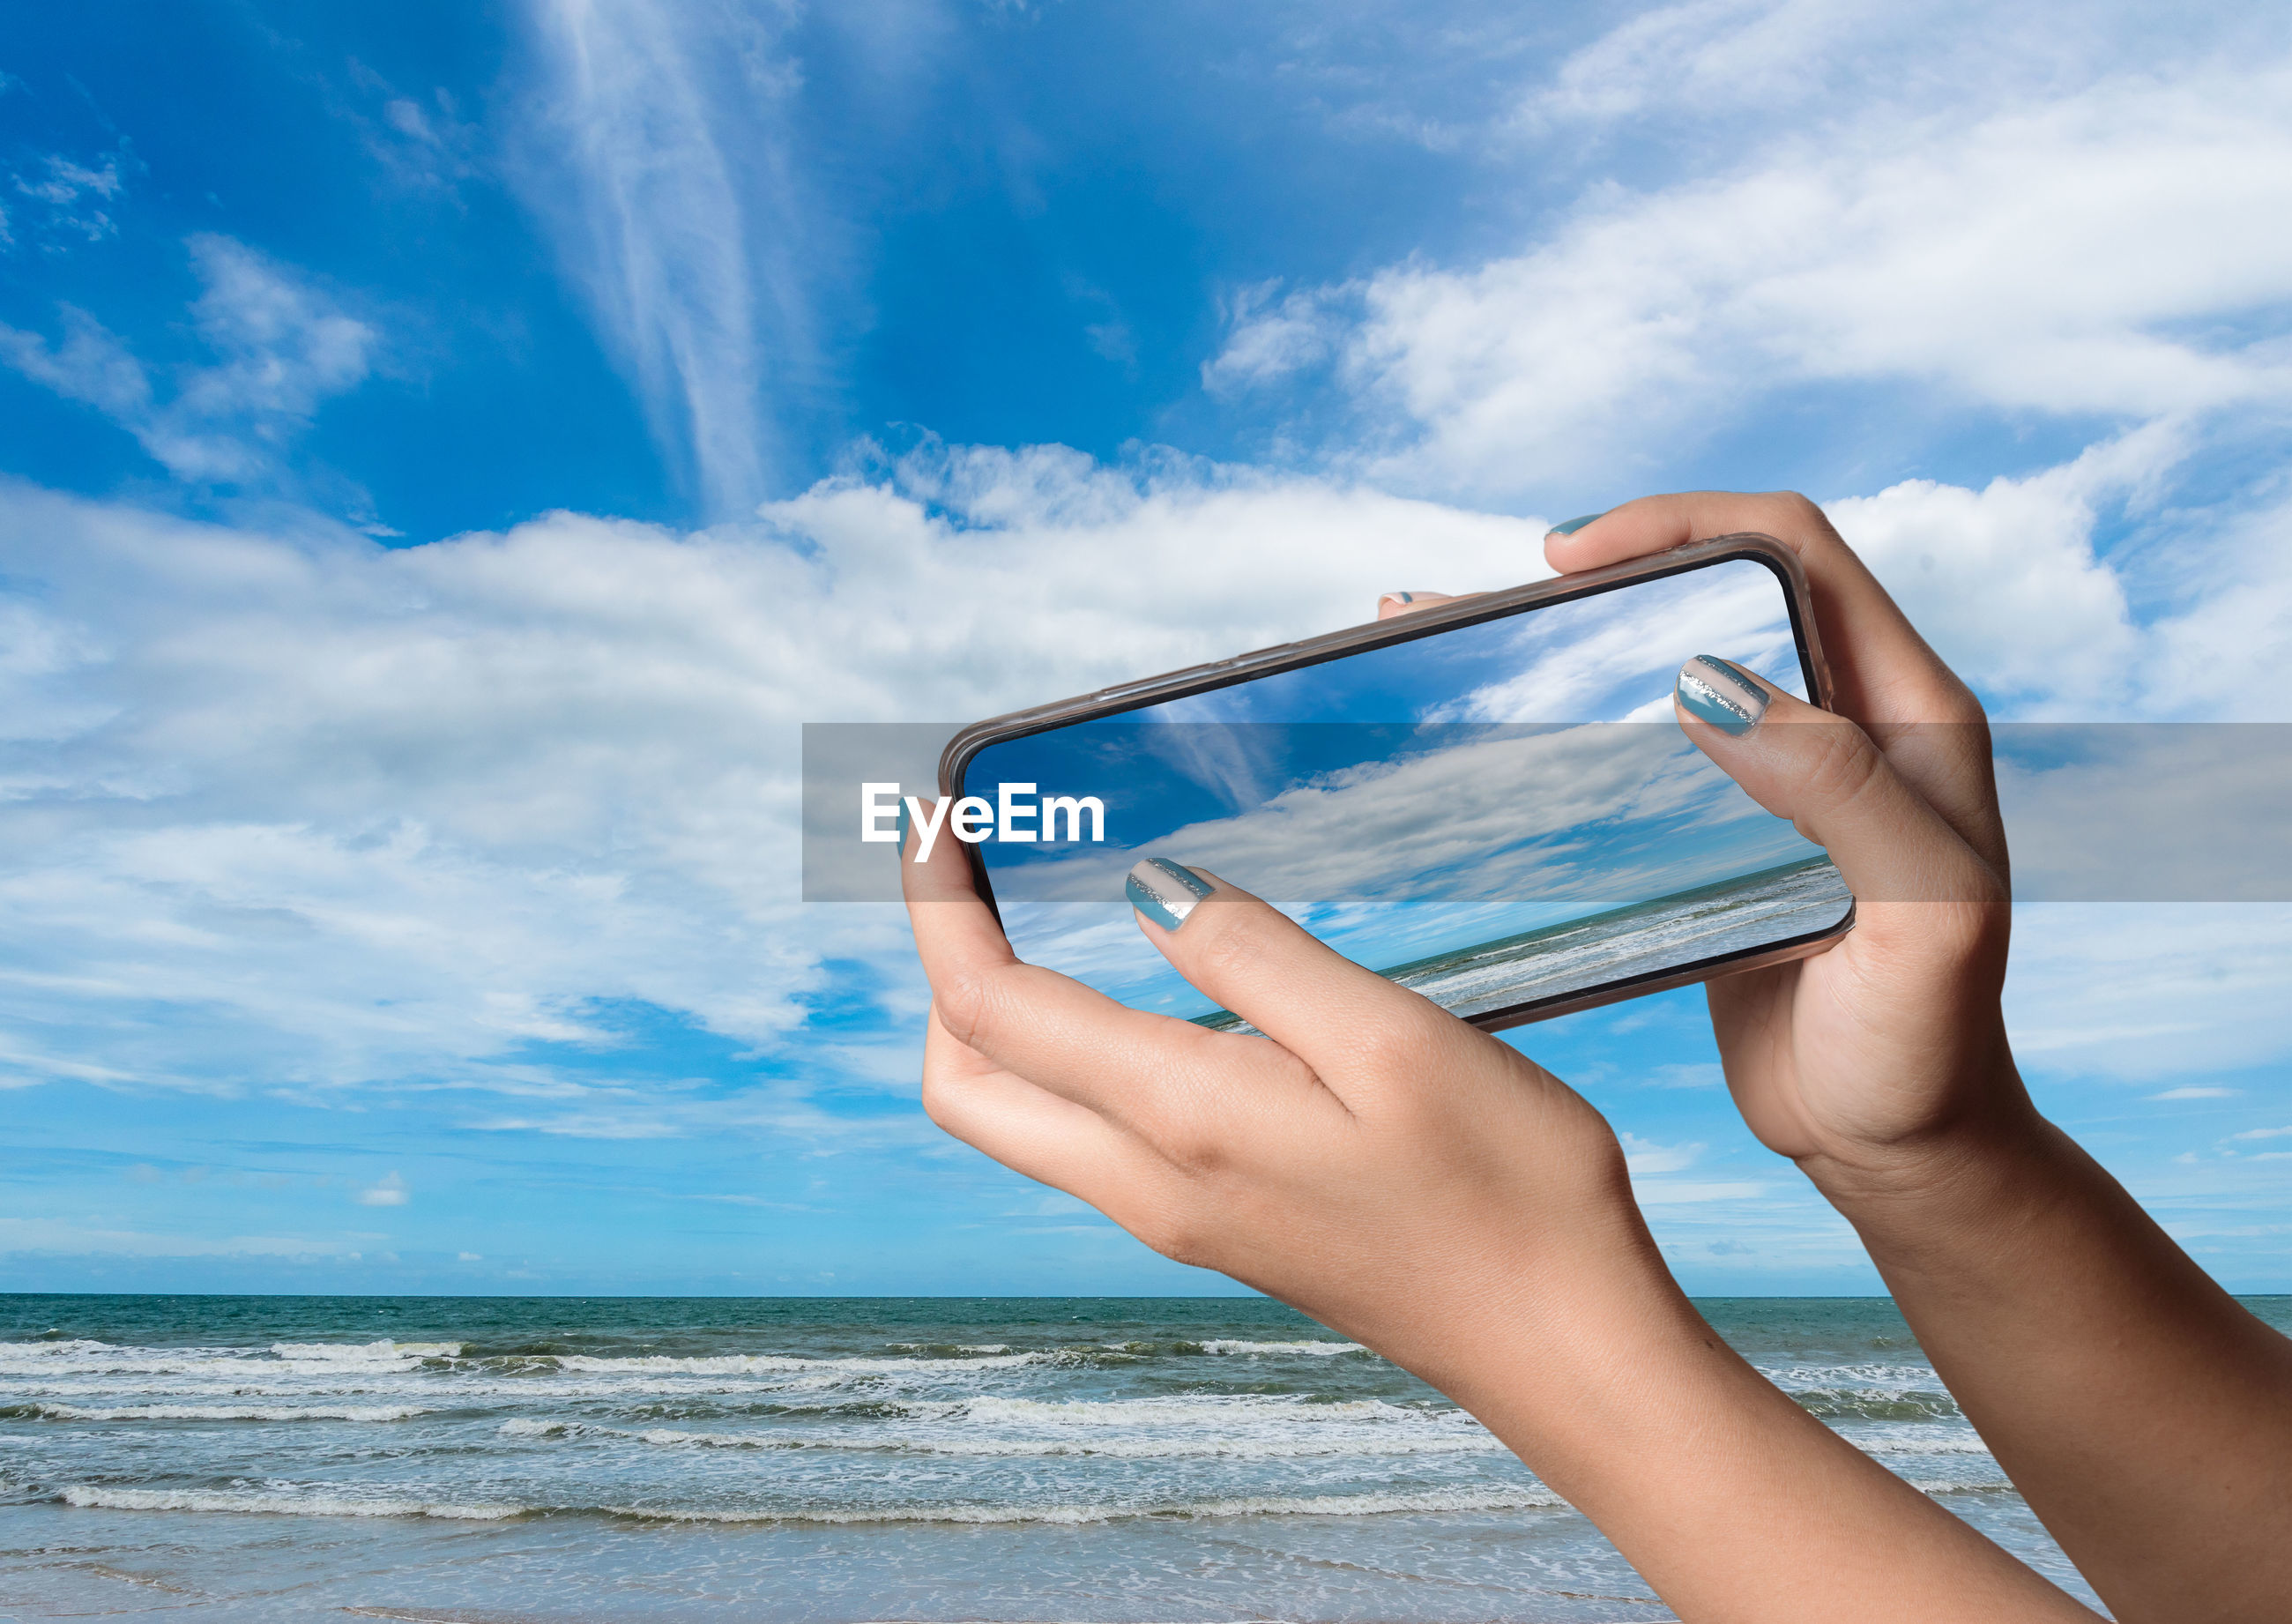 Cropped hand of woman using mobile phone against sea